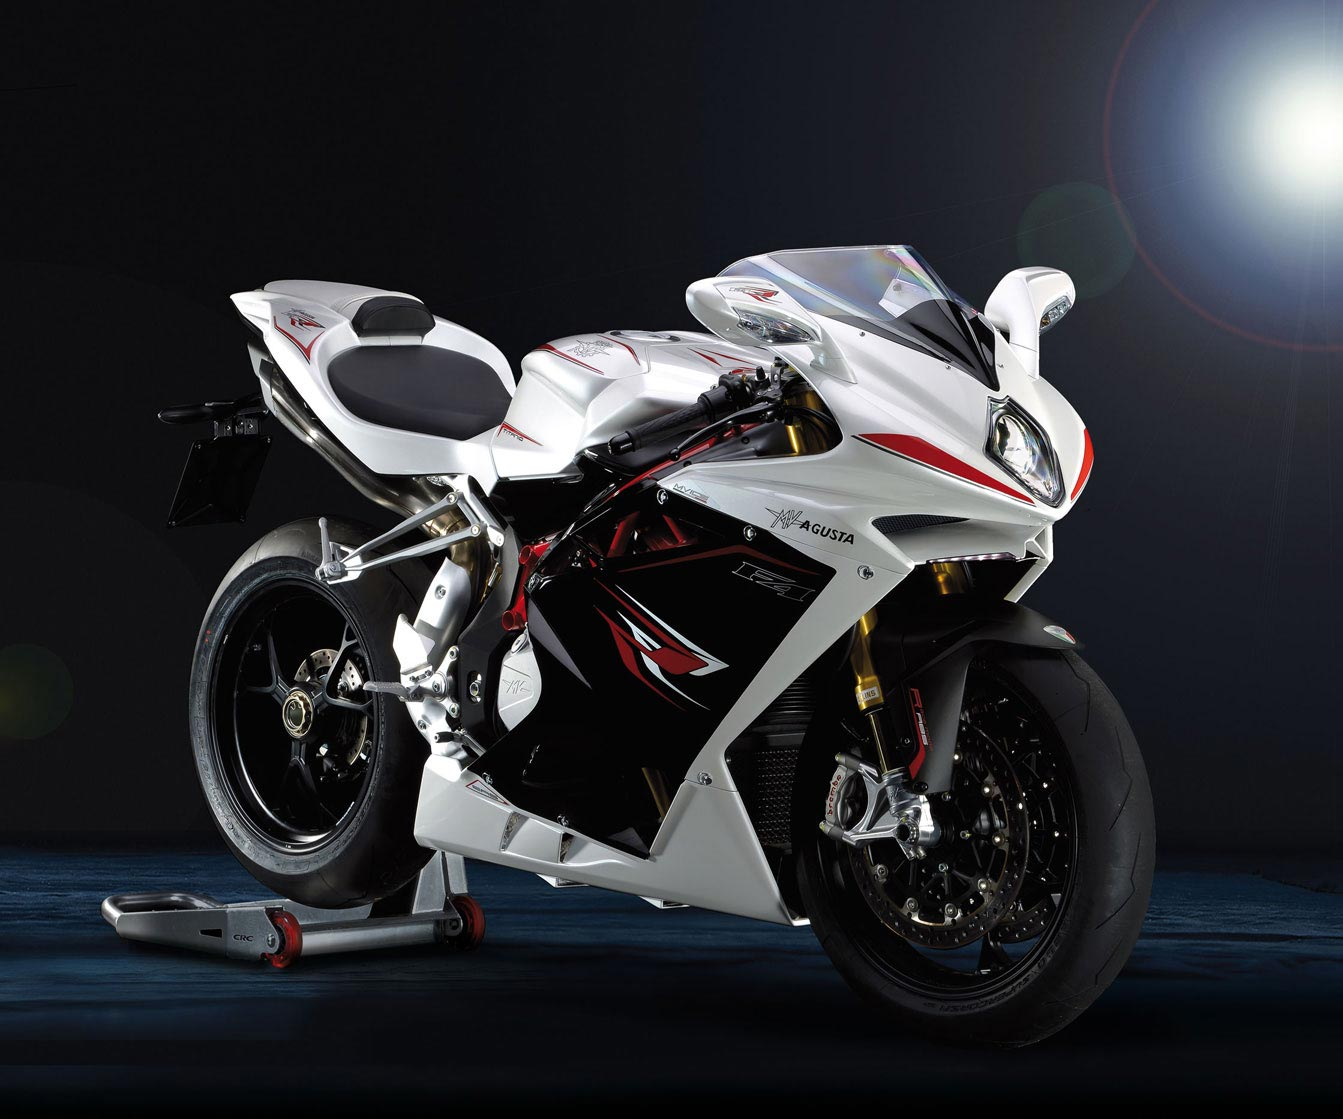 MV Agusta F4 Gets ABS for 2013 - Asphalt & Rubber